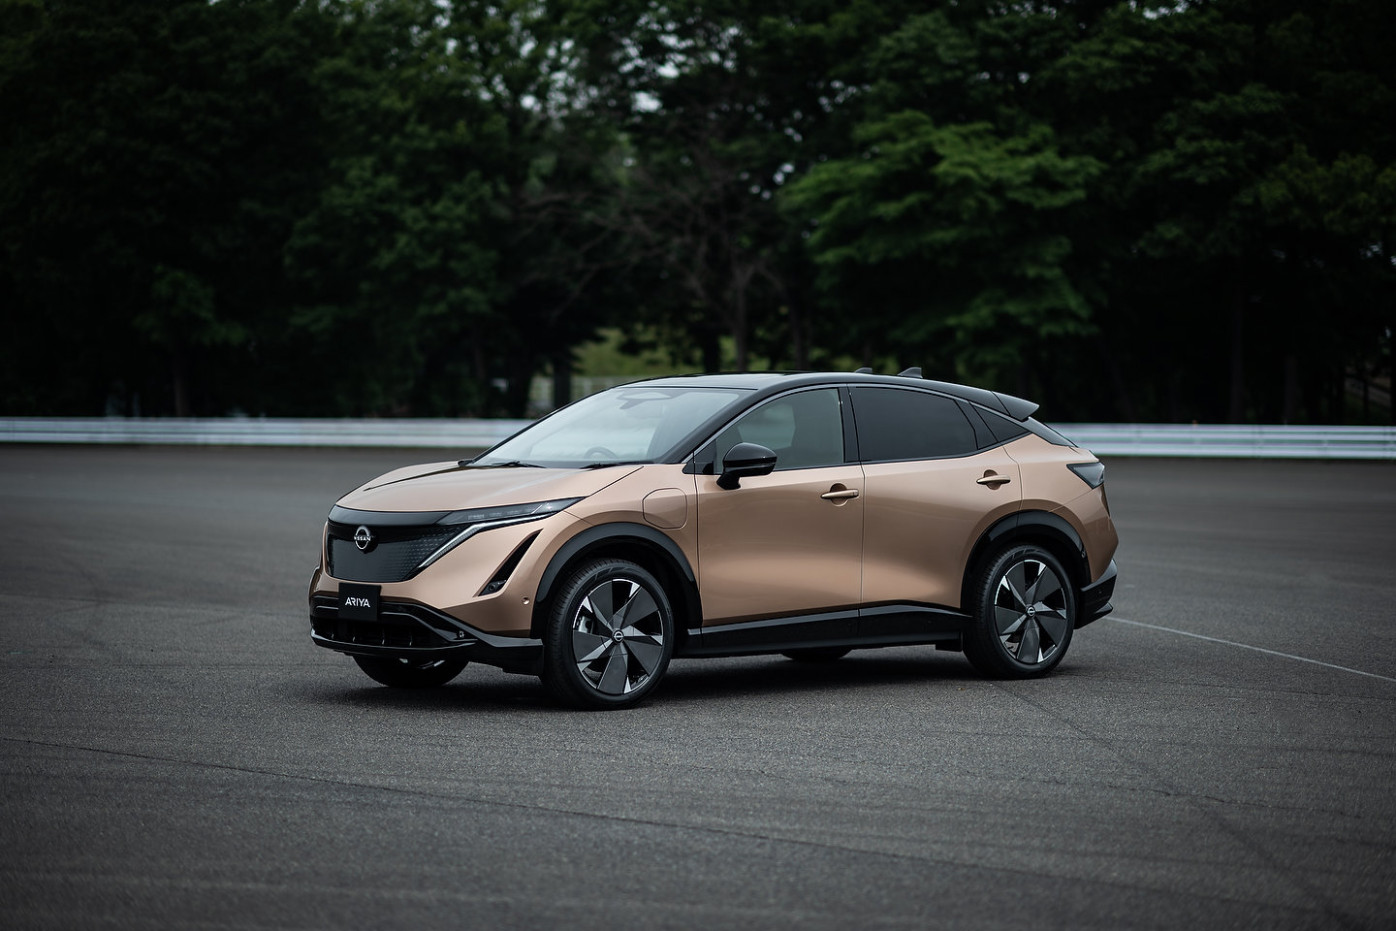 Configurations When Will The 2022 Nissan Maxima Come Out